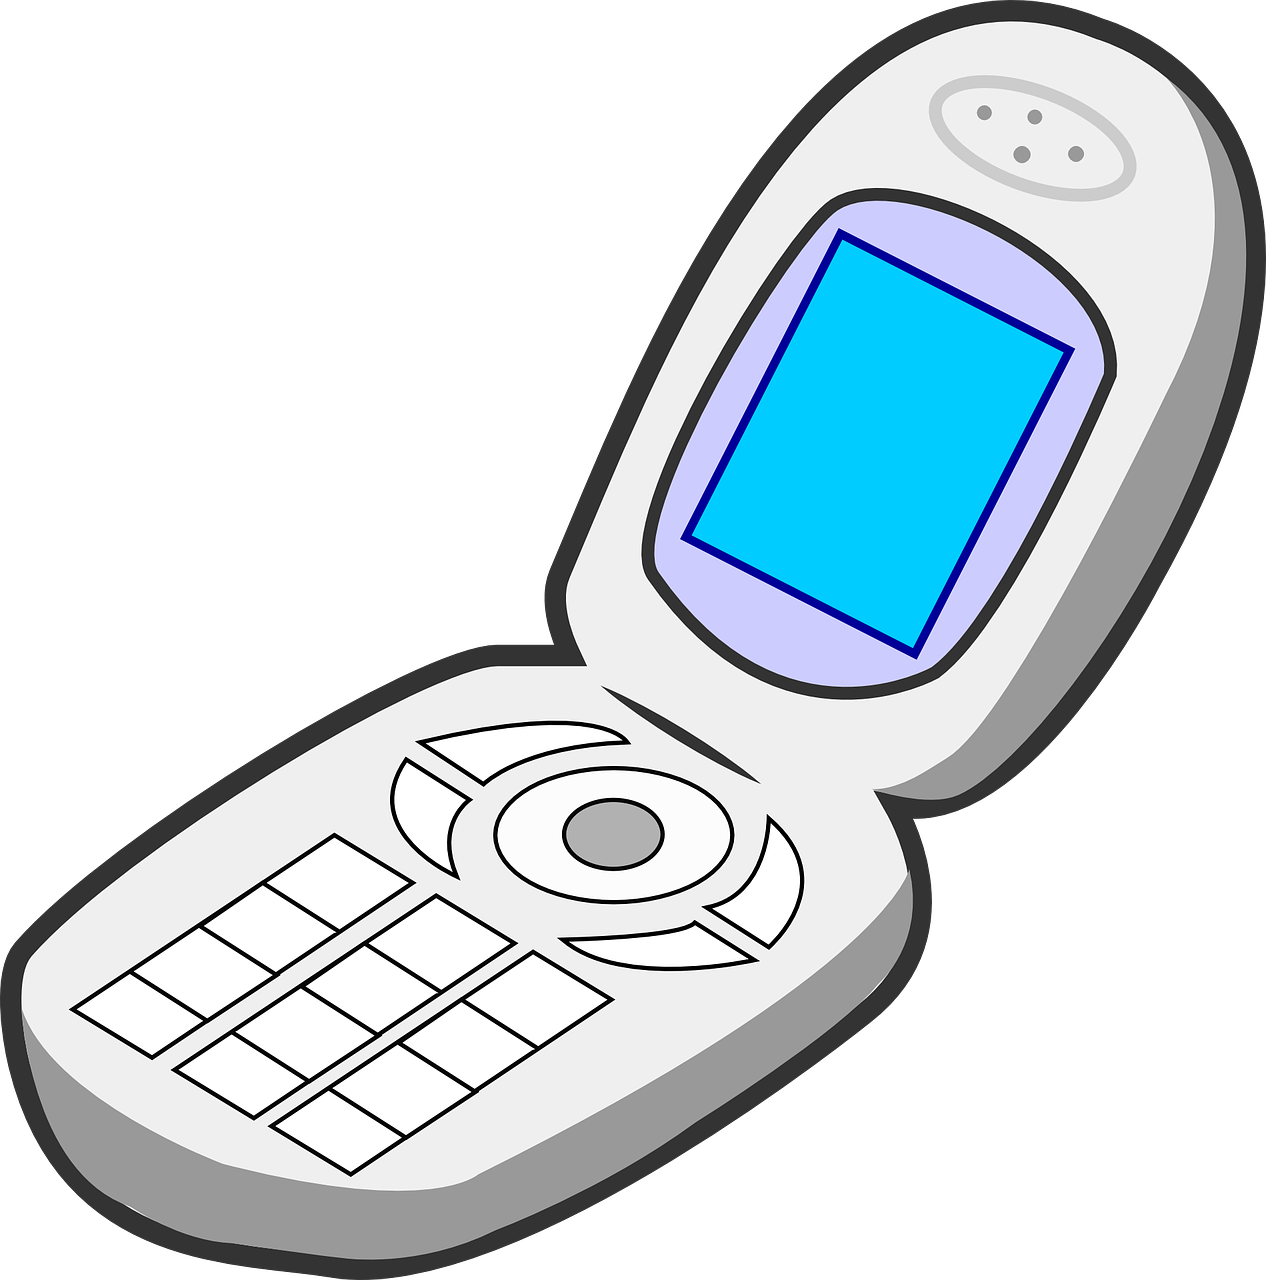 Flip phones for the. Telephone clipart teliphone